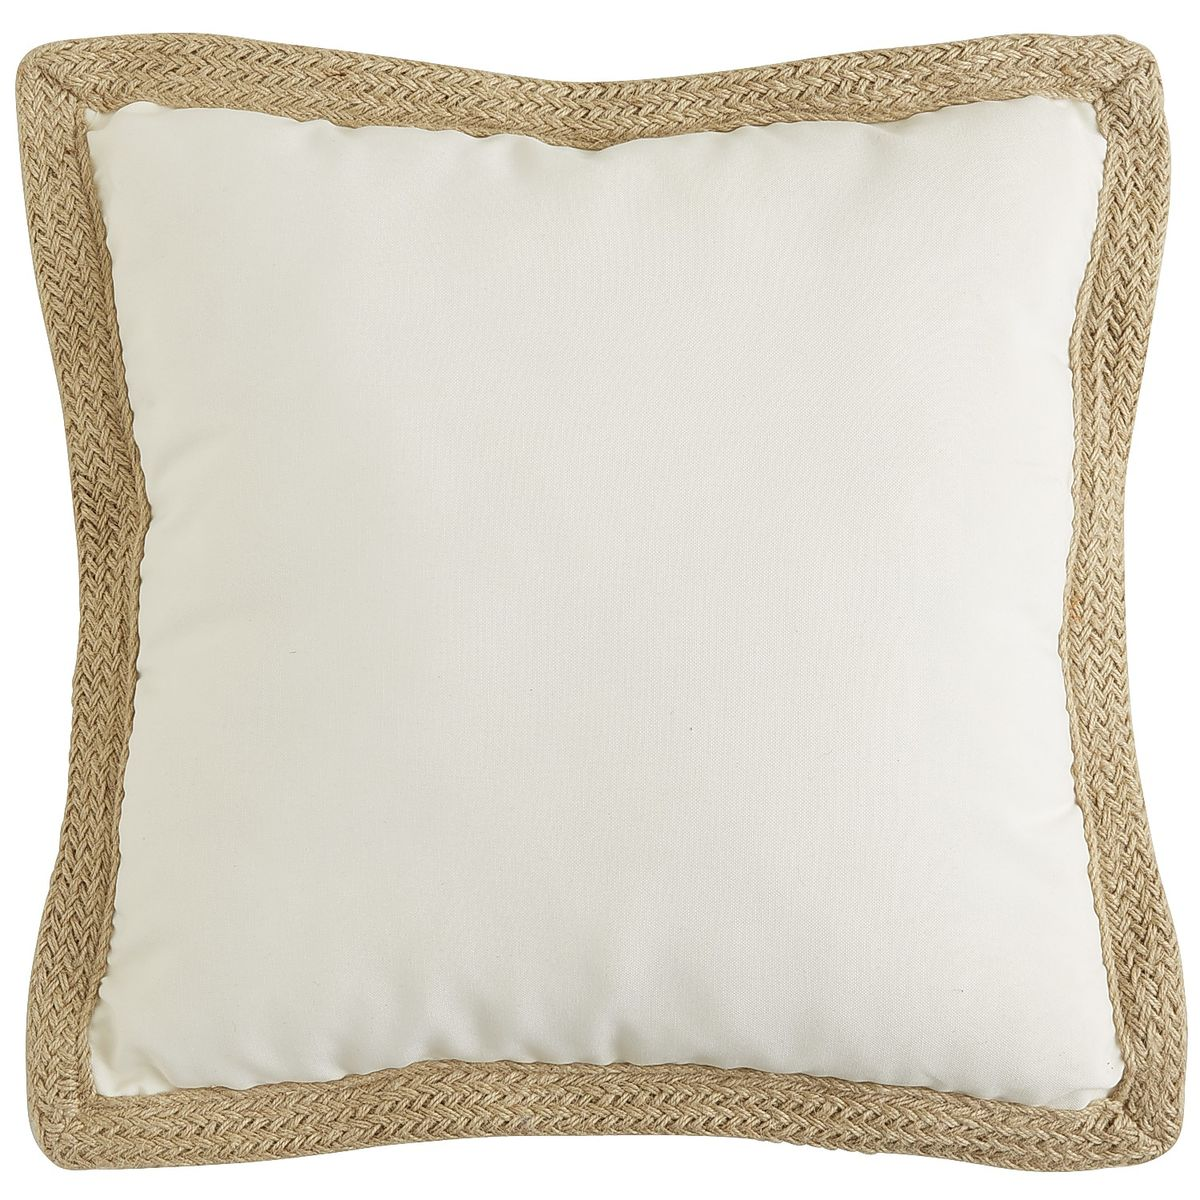 Decor Look Alikes | Pier 1 Cabana Jute Trim Pillow